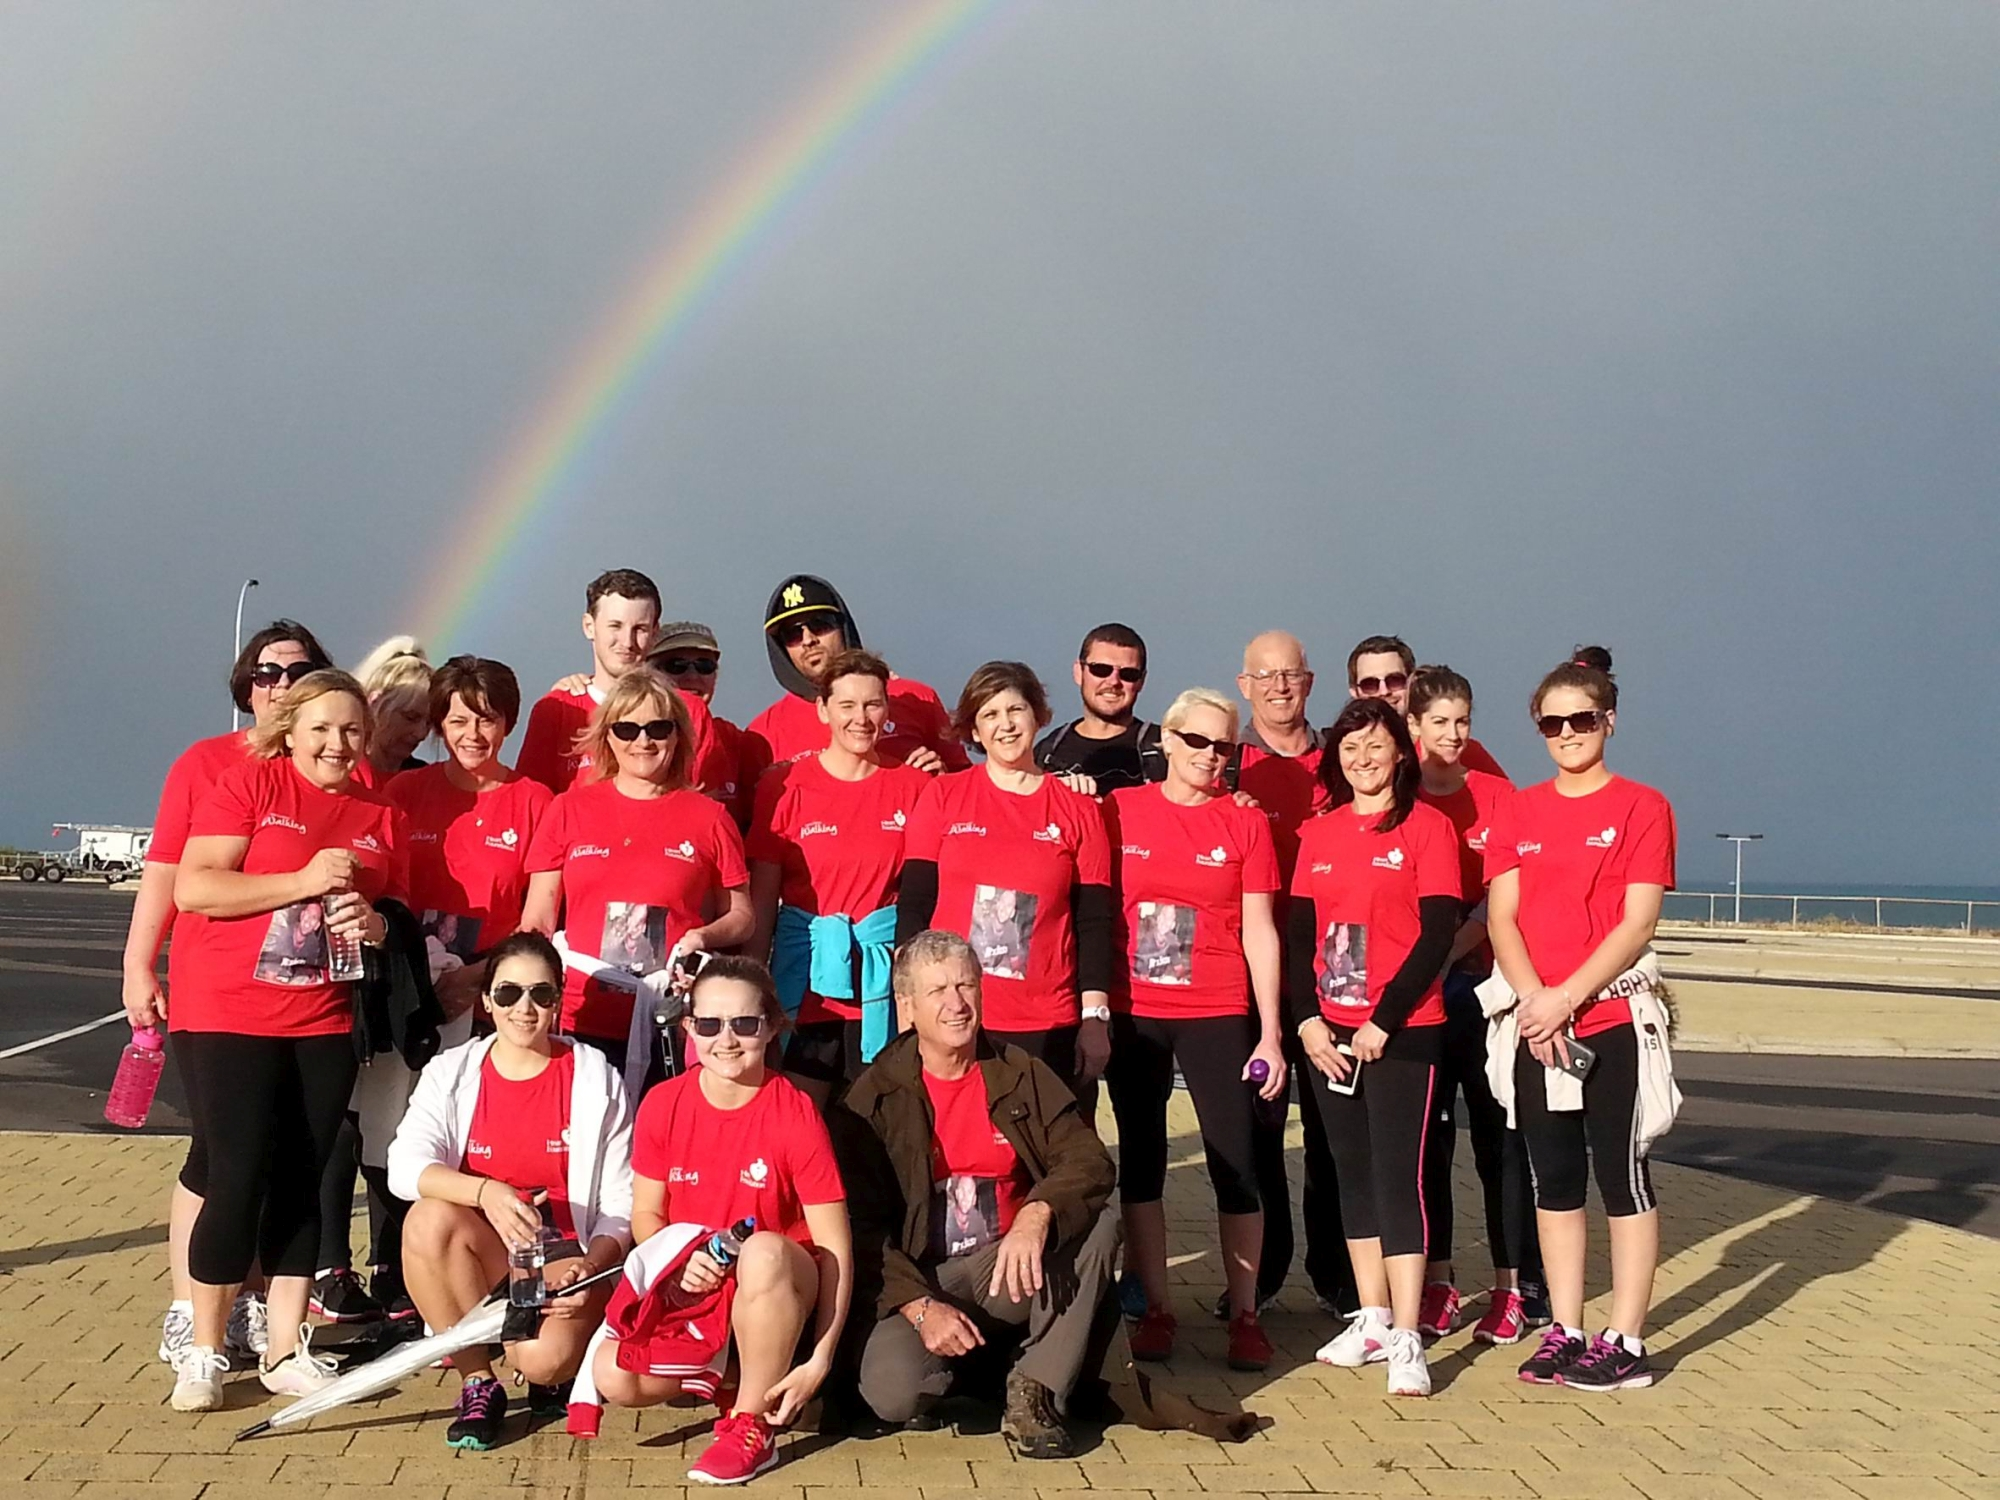 A rainbow during the walk for the National Heart Foundation.